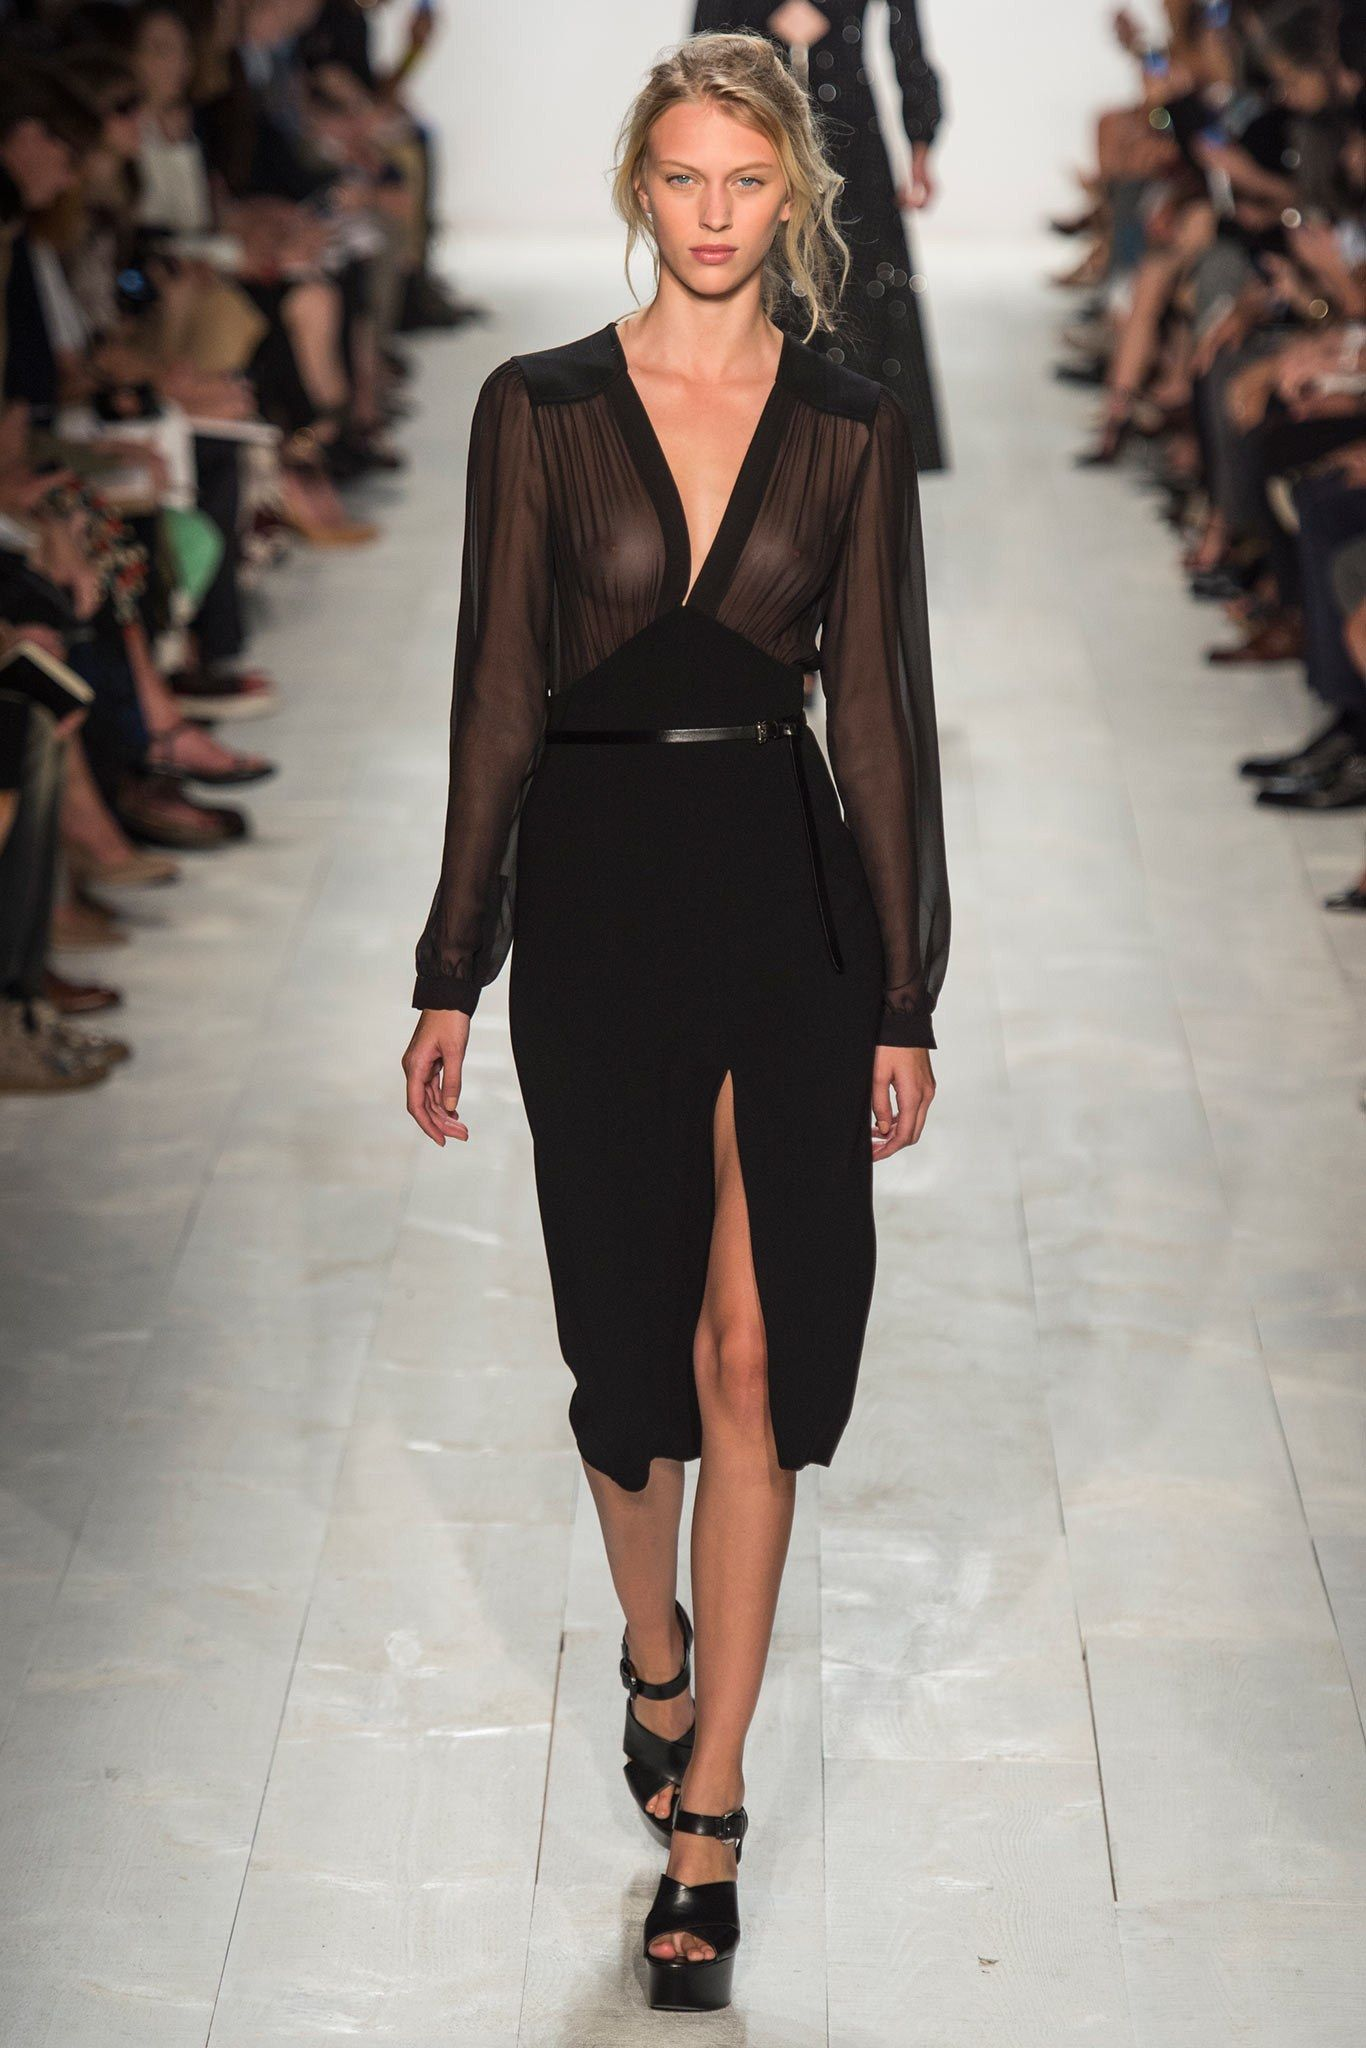 Michael Kors Collection Spring 2014 Ready-to-Wear Fashion what a wonderful LBD for summer Show - Juliana Schurig